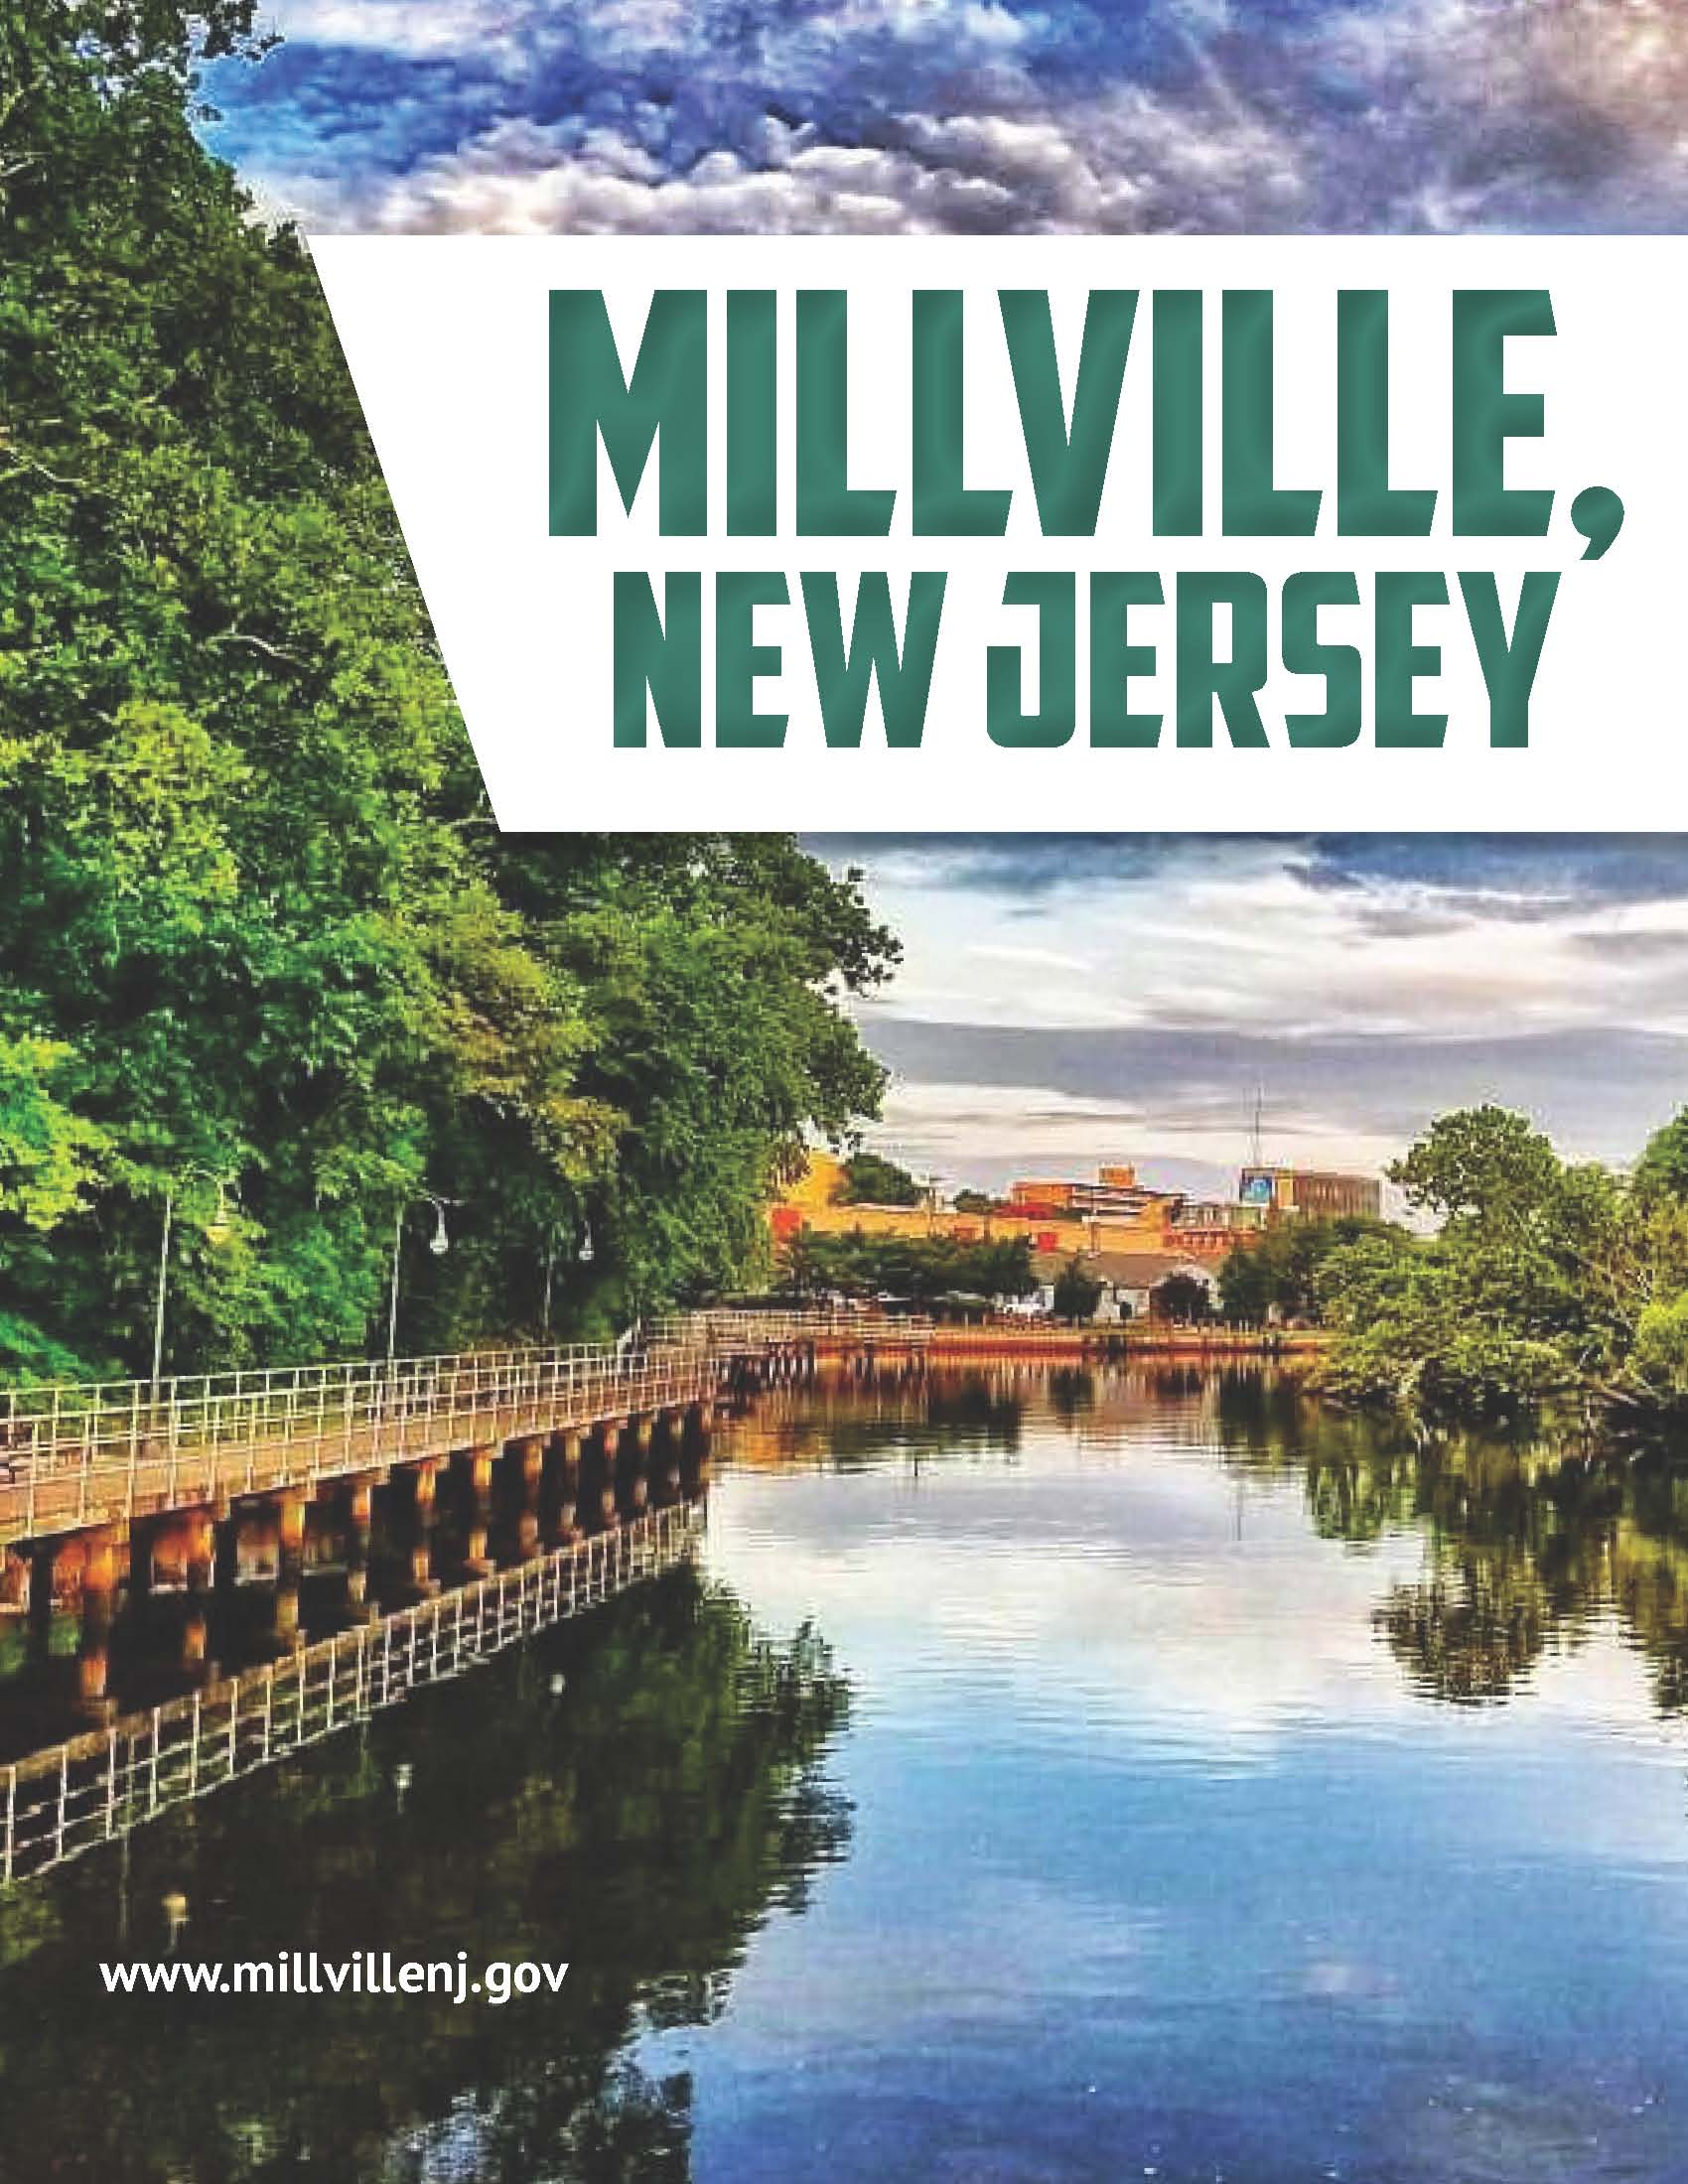 City of Millville Magazine Cover